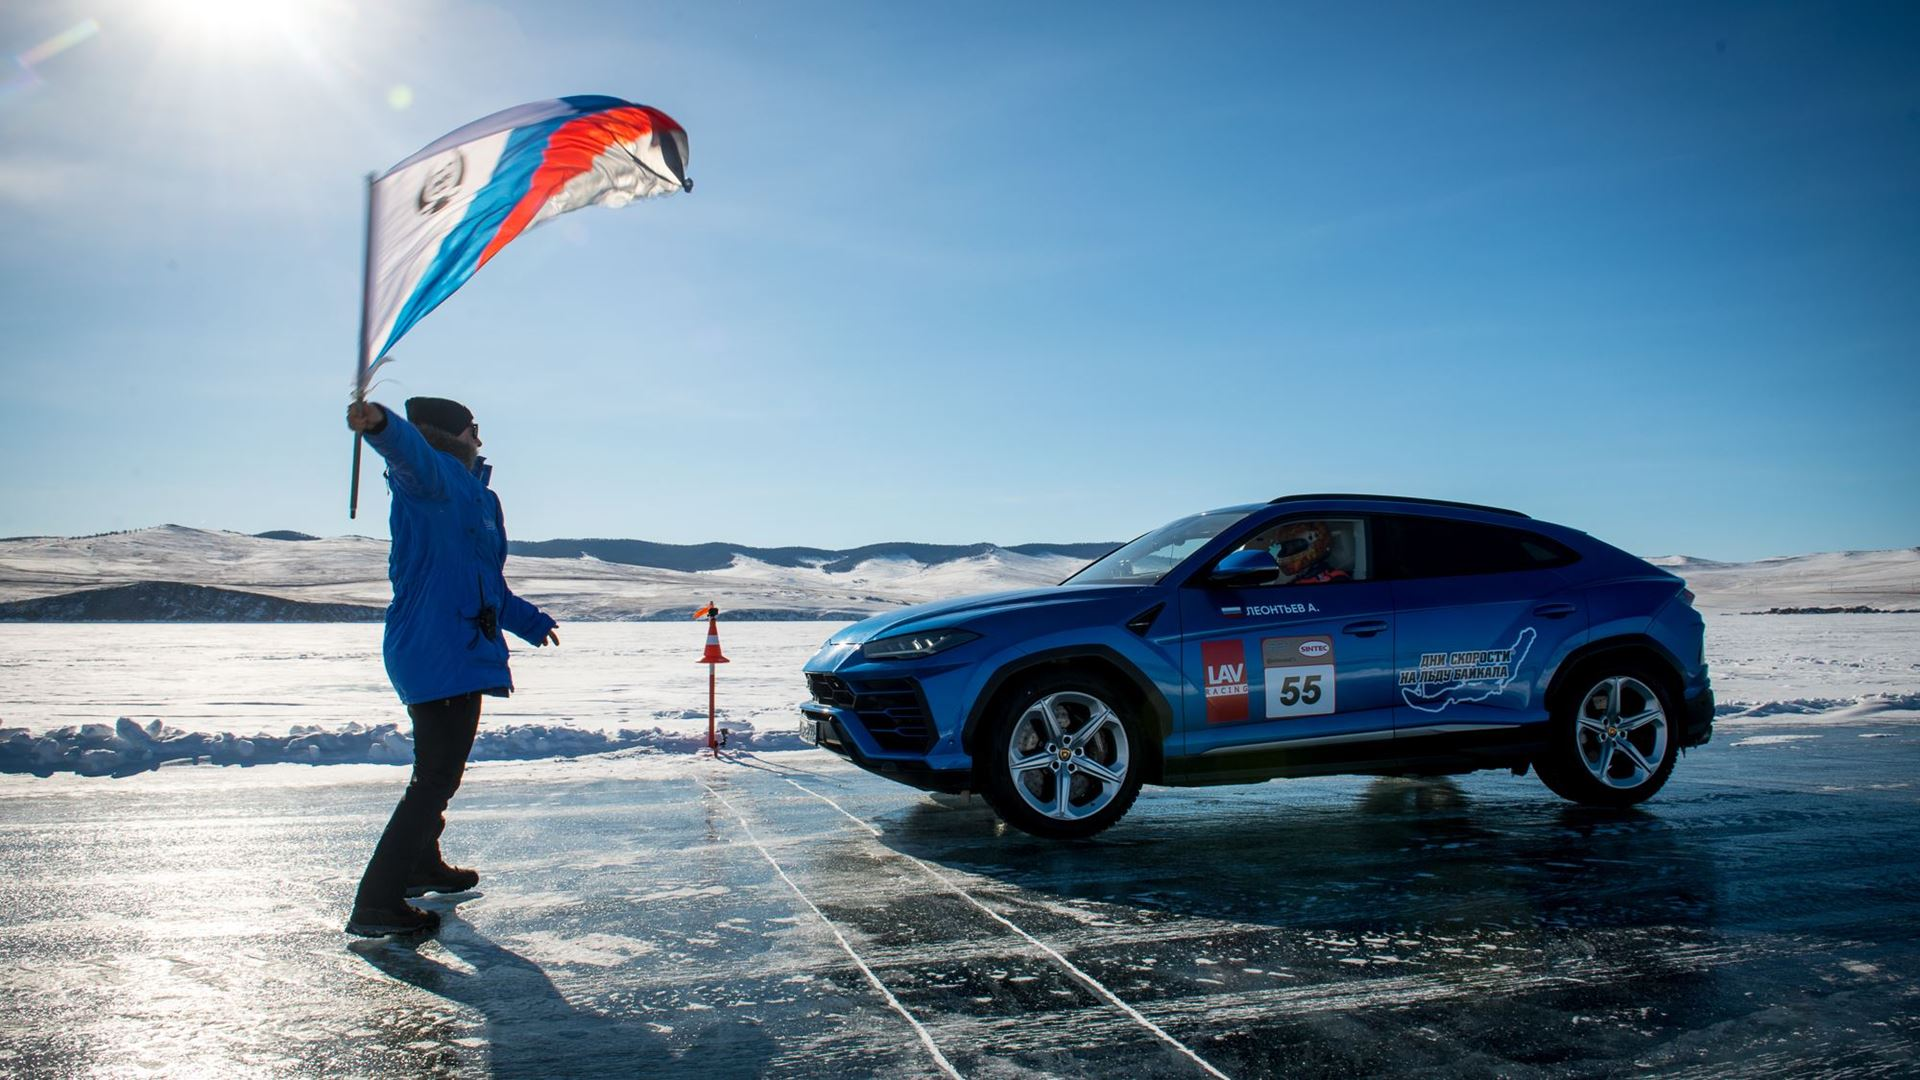 Lamborghini Urus sets high-speed record on the ice of Lake Baikal - Image 5